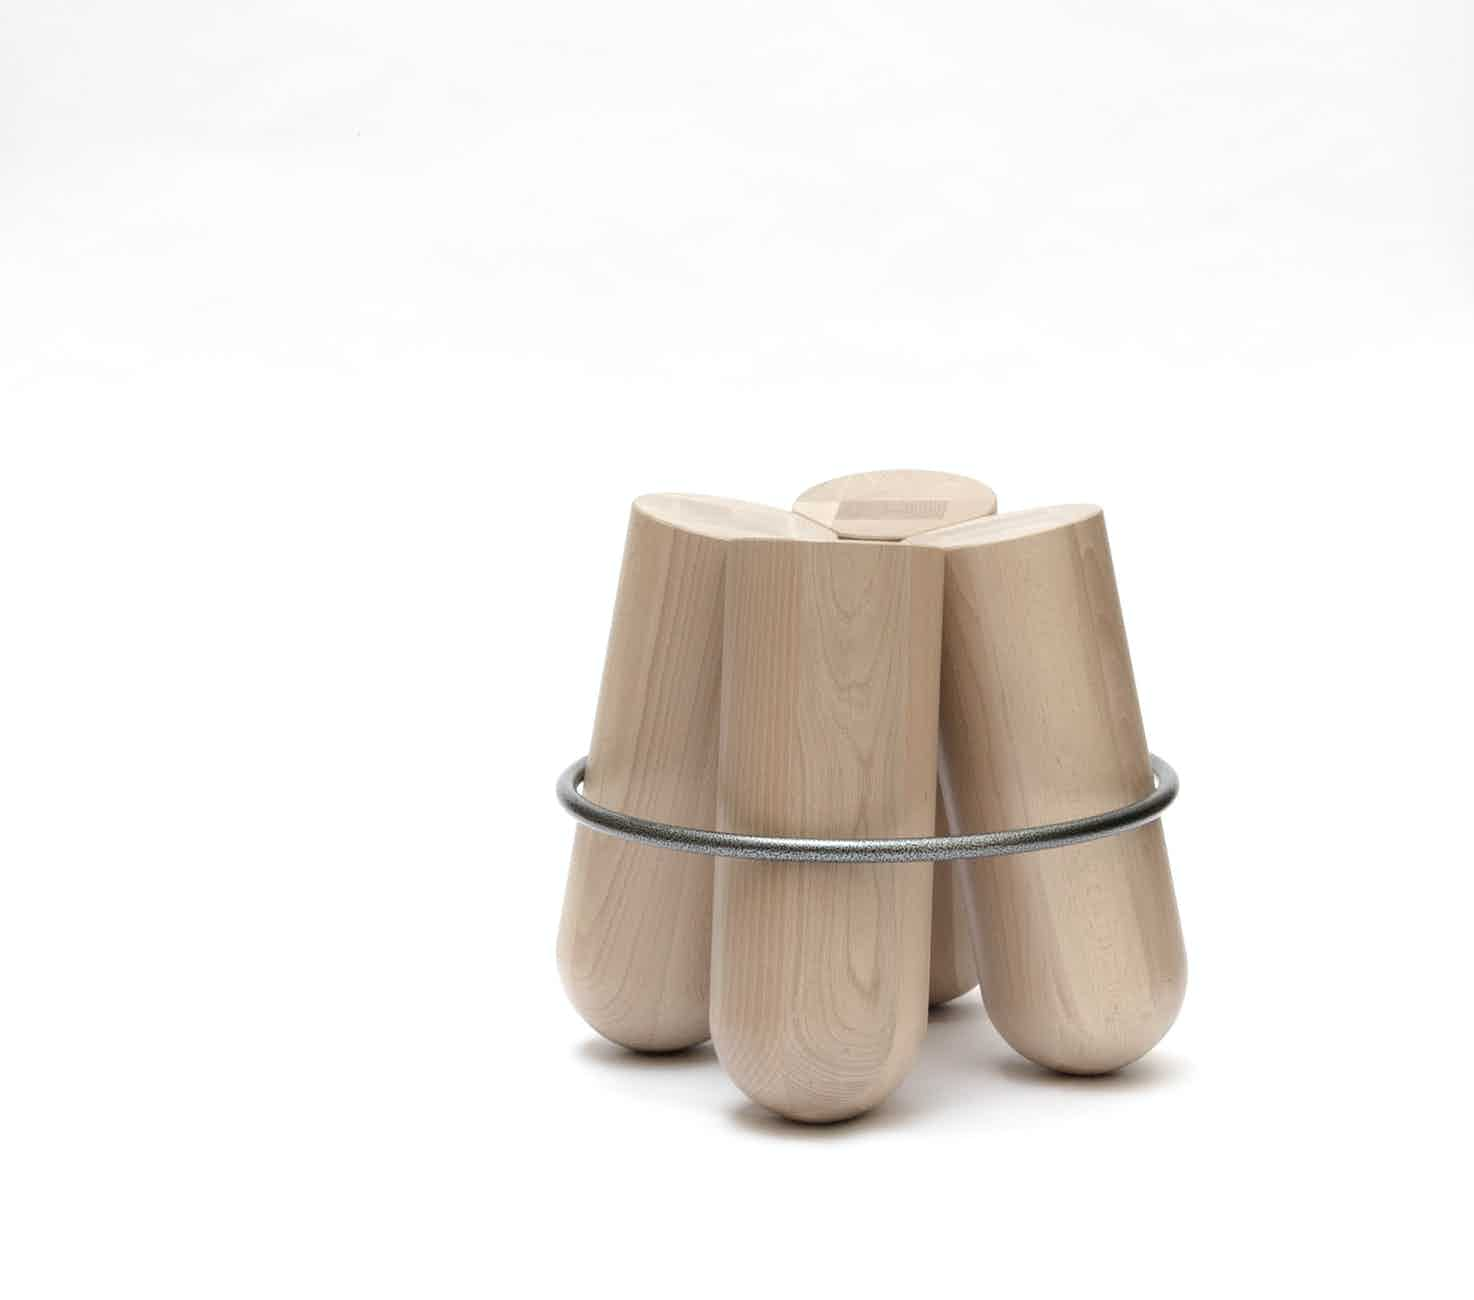 La-chance-furniture-bolt-stool-ash-steel-haute-living